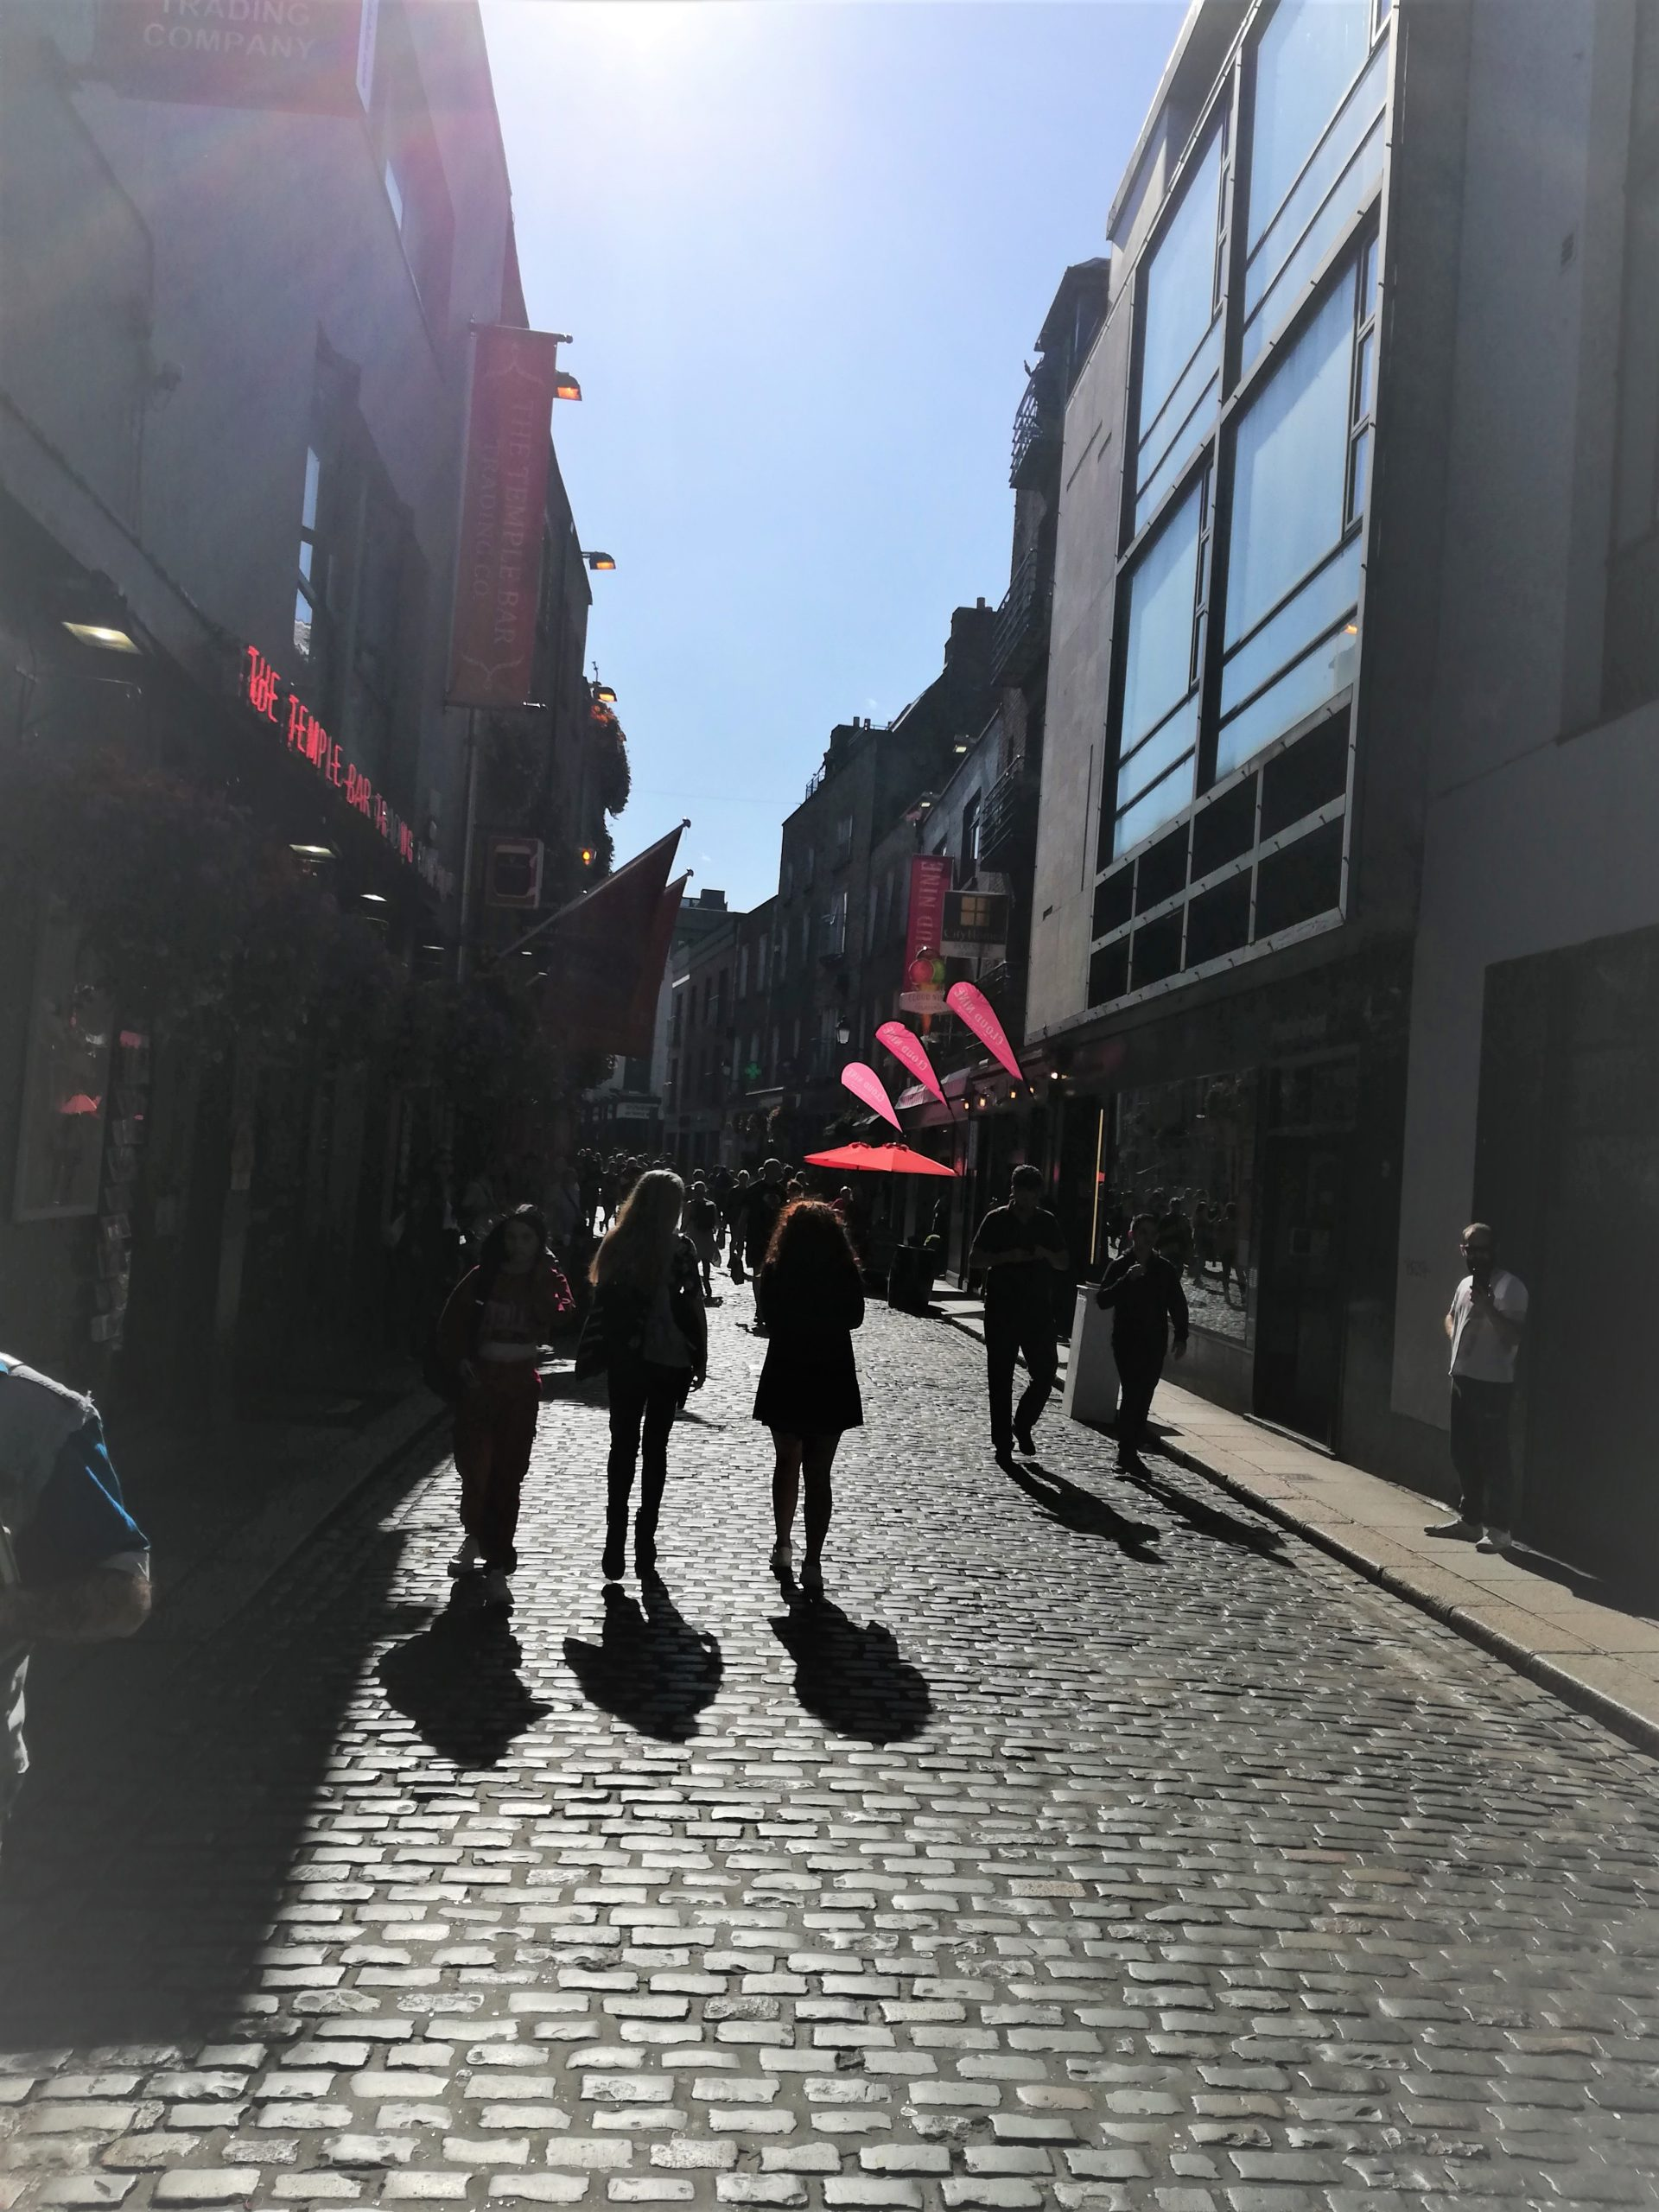 A cobbled street in Temple bar, people walking and blue skys